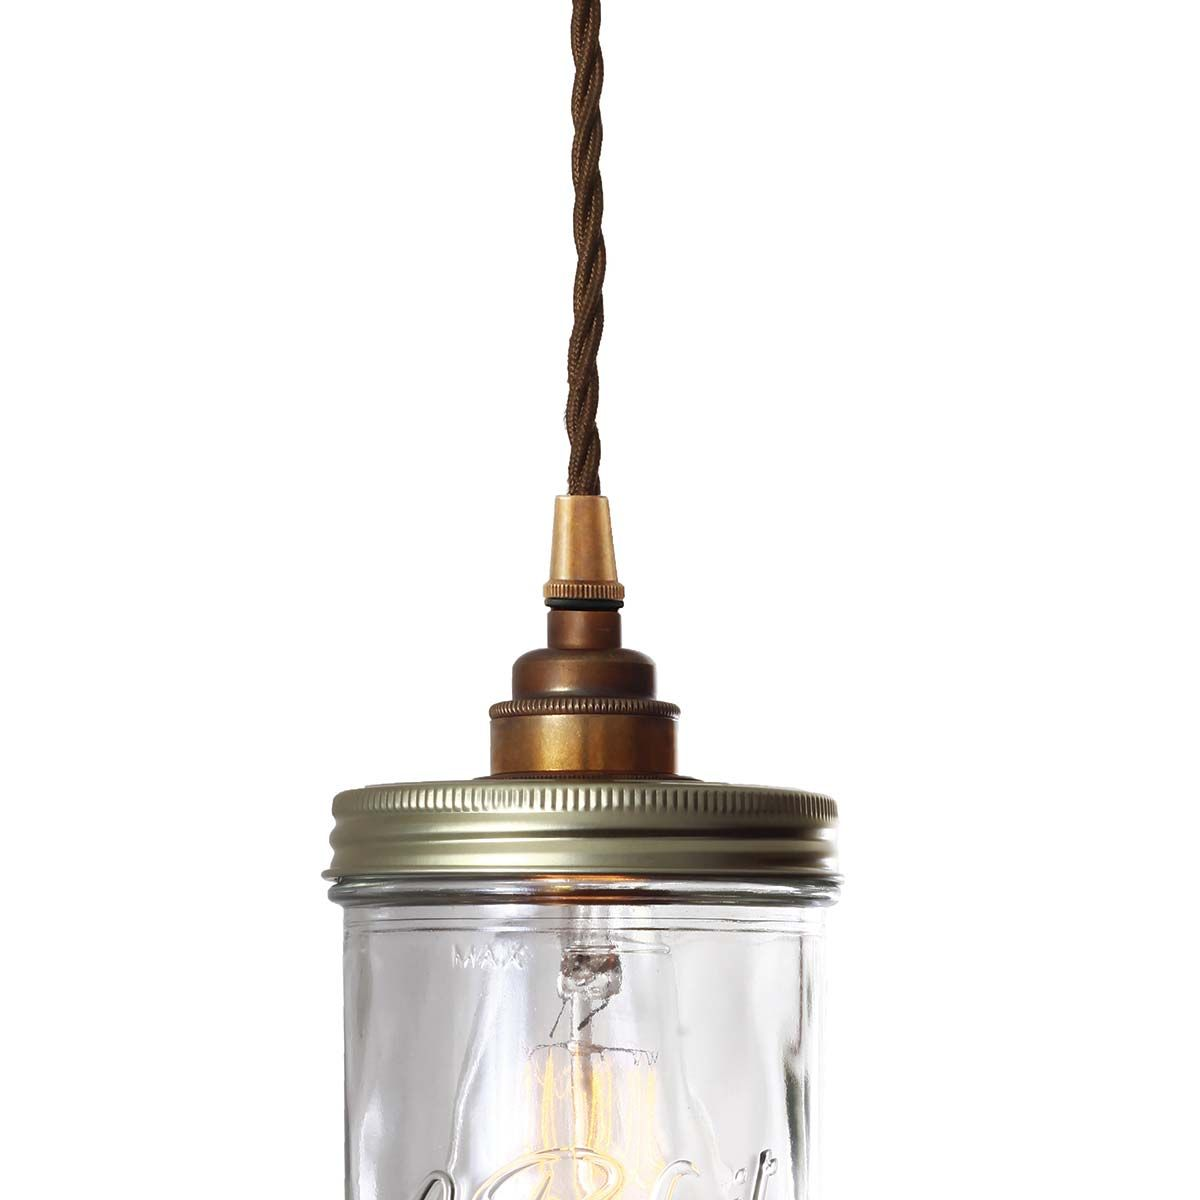 Suspension bocal Le Parfait en verre et laiton Jam Jar Mullan Lighting